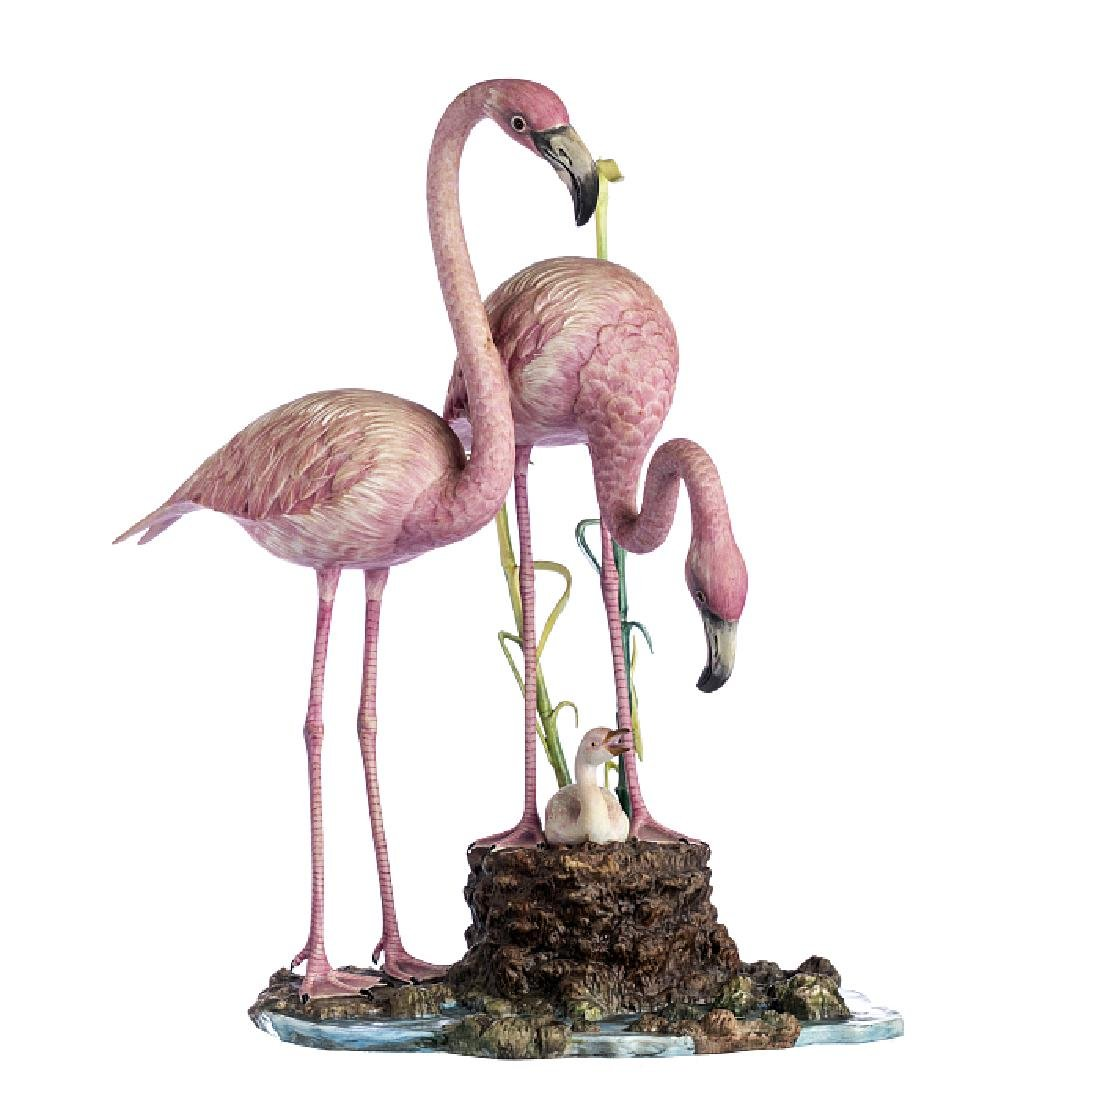 Sculpture group with 'Flamingos' by Vista Alegre